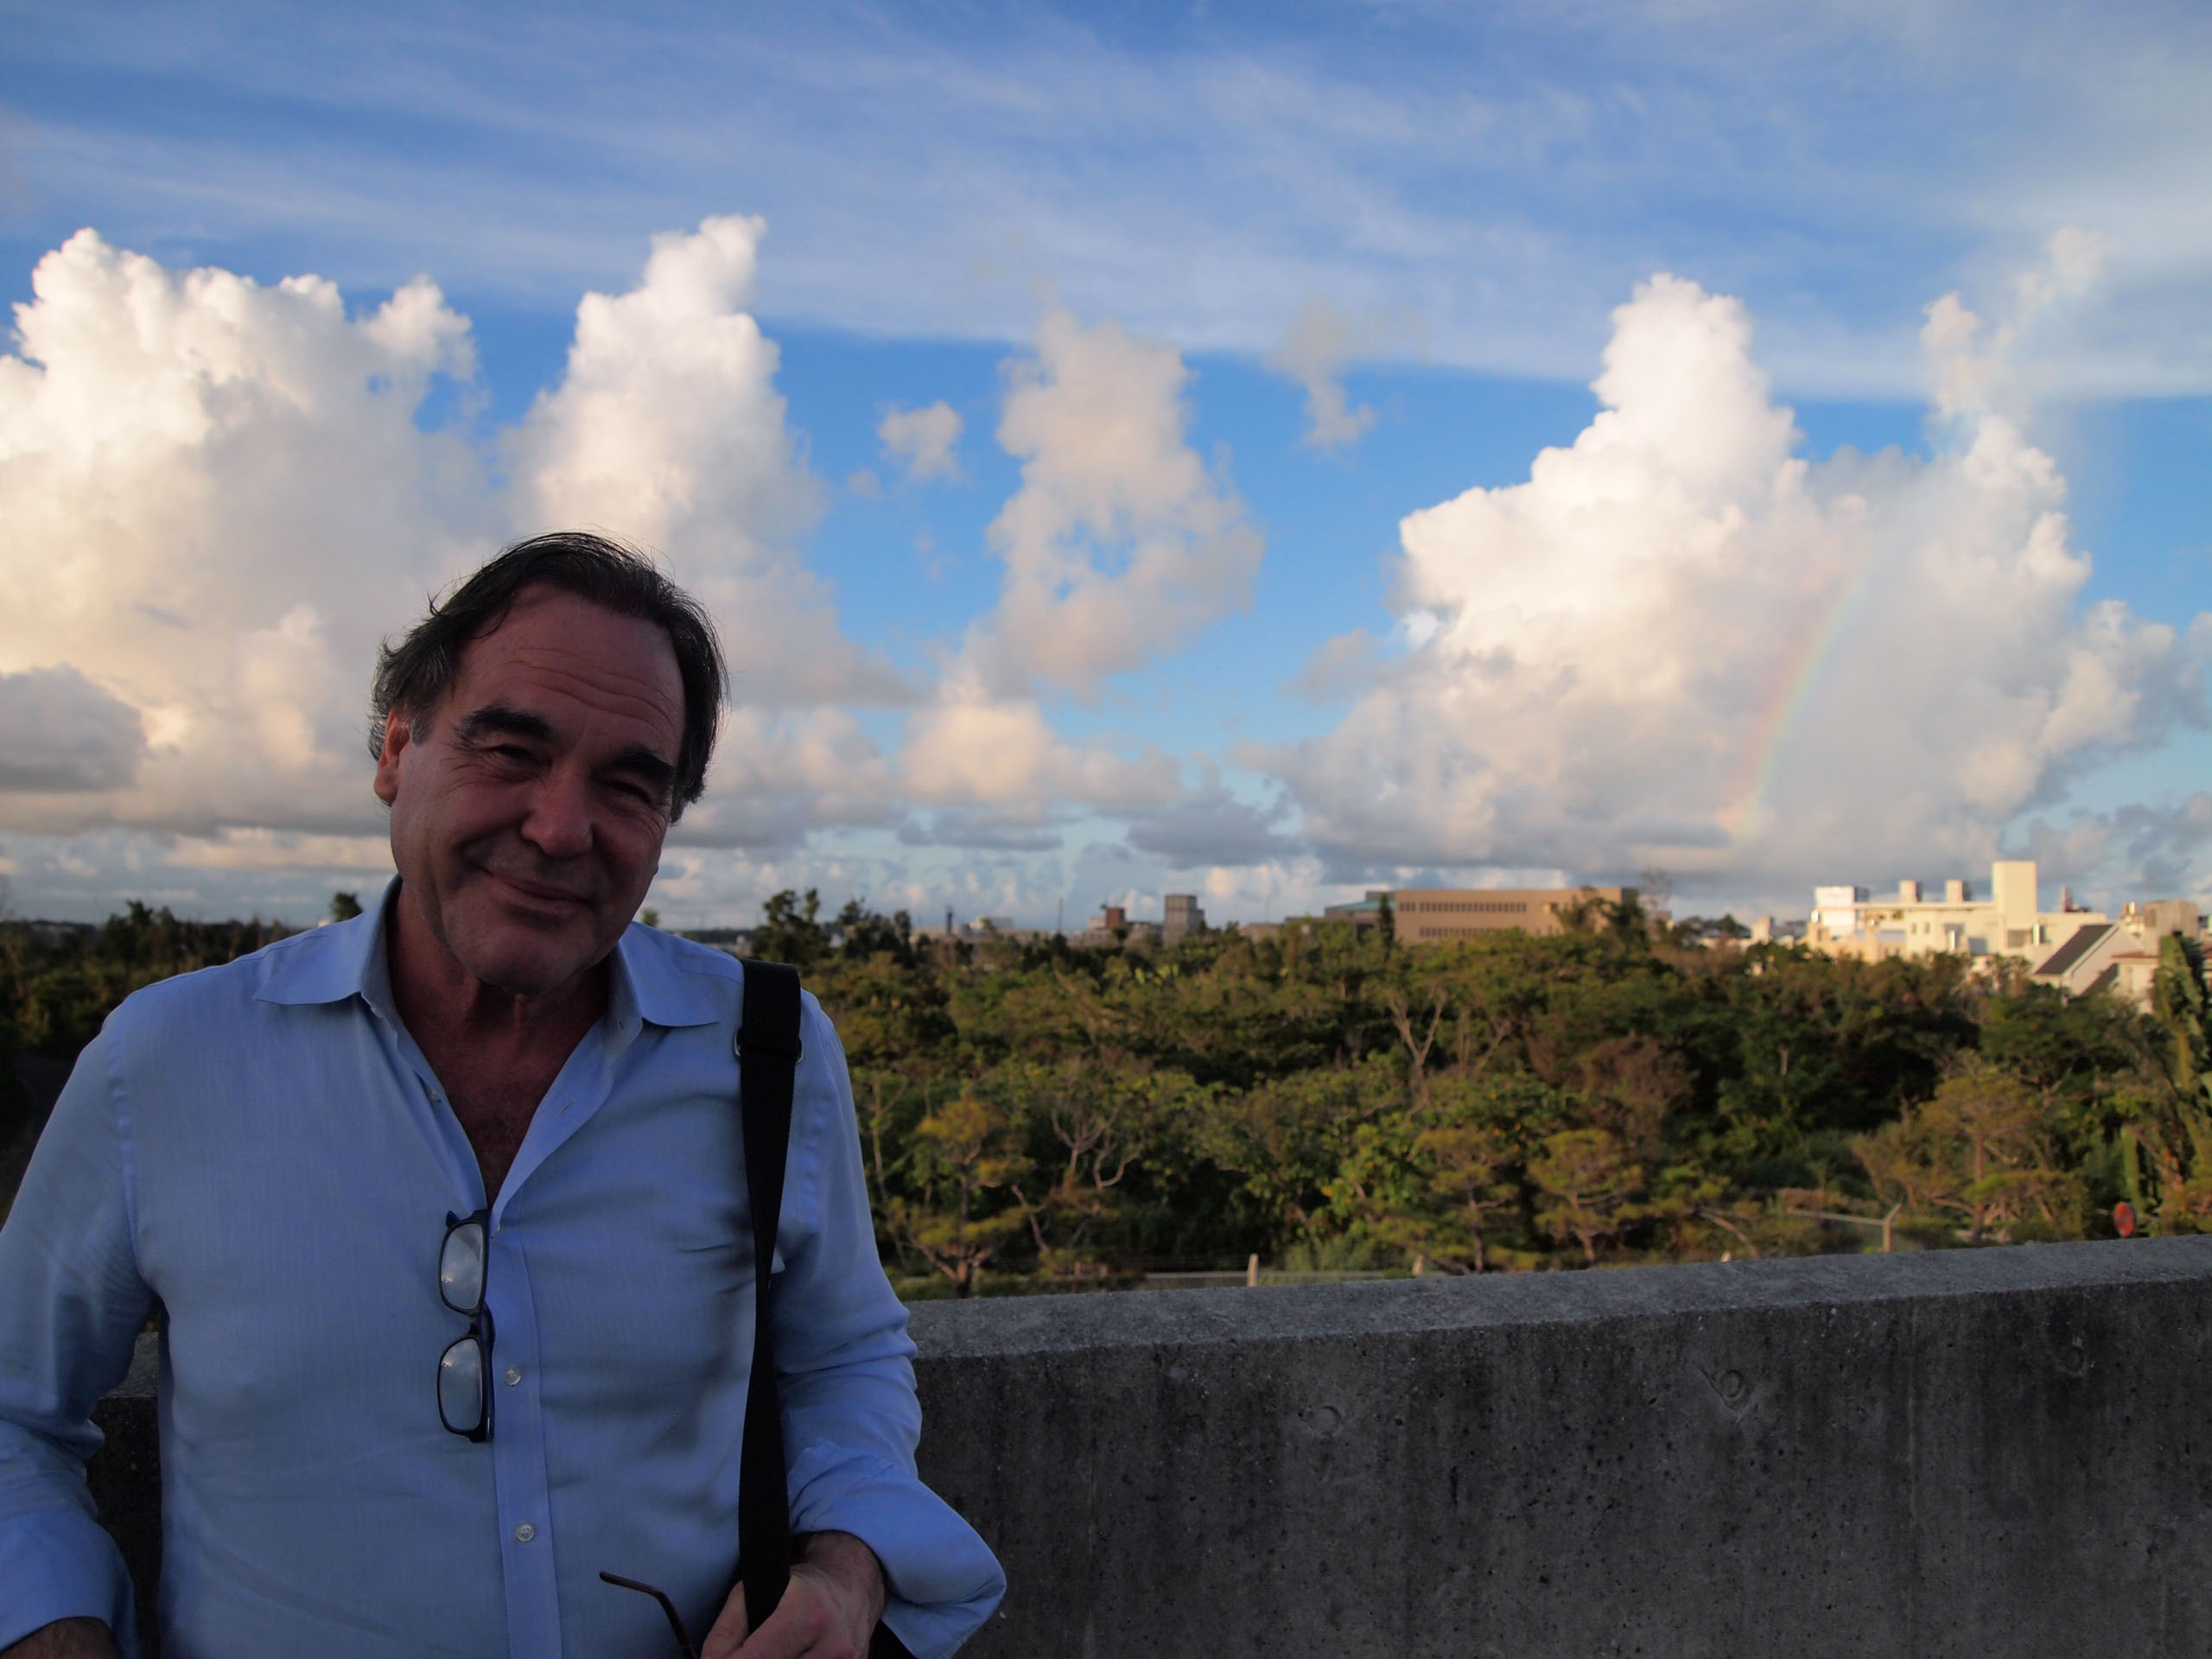 Tour of duty: A rainbow breaks through the clouds as American film director Oliver Stone stands on the rooftop of Sakima Art Museum in Ginowan, Okinawa, on Aug. 13. | JON MITCHELL